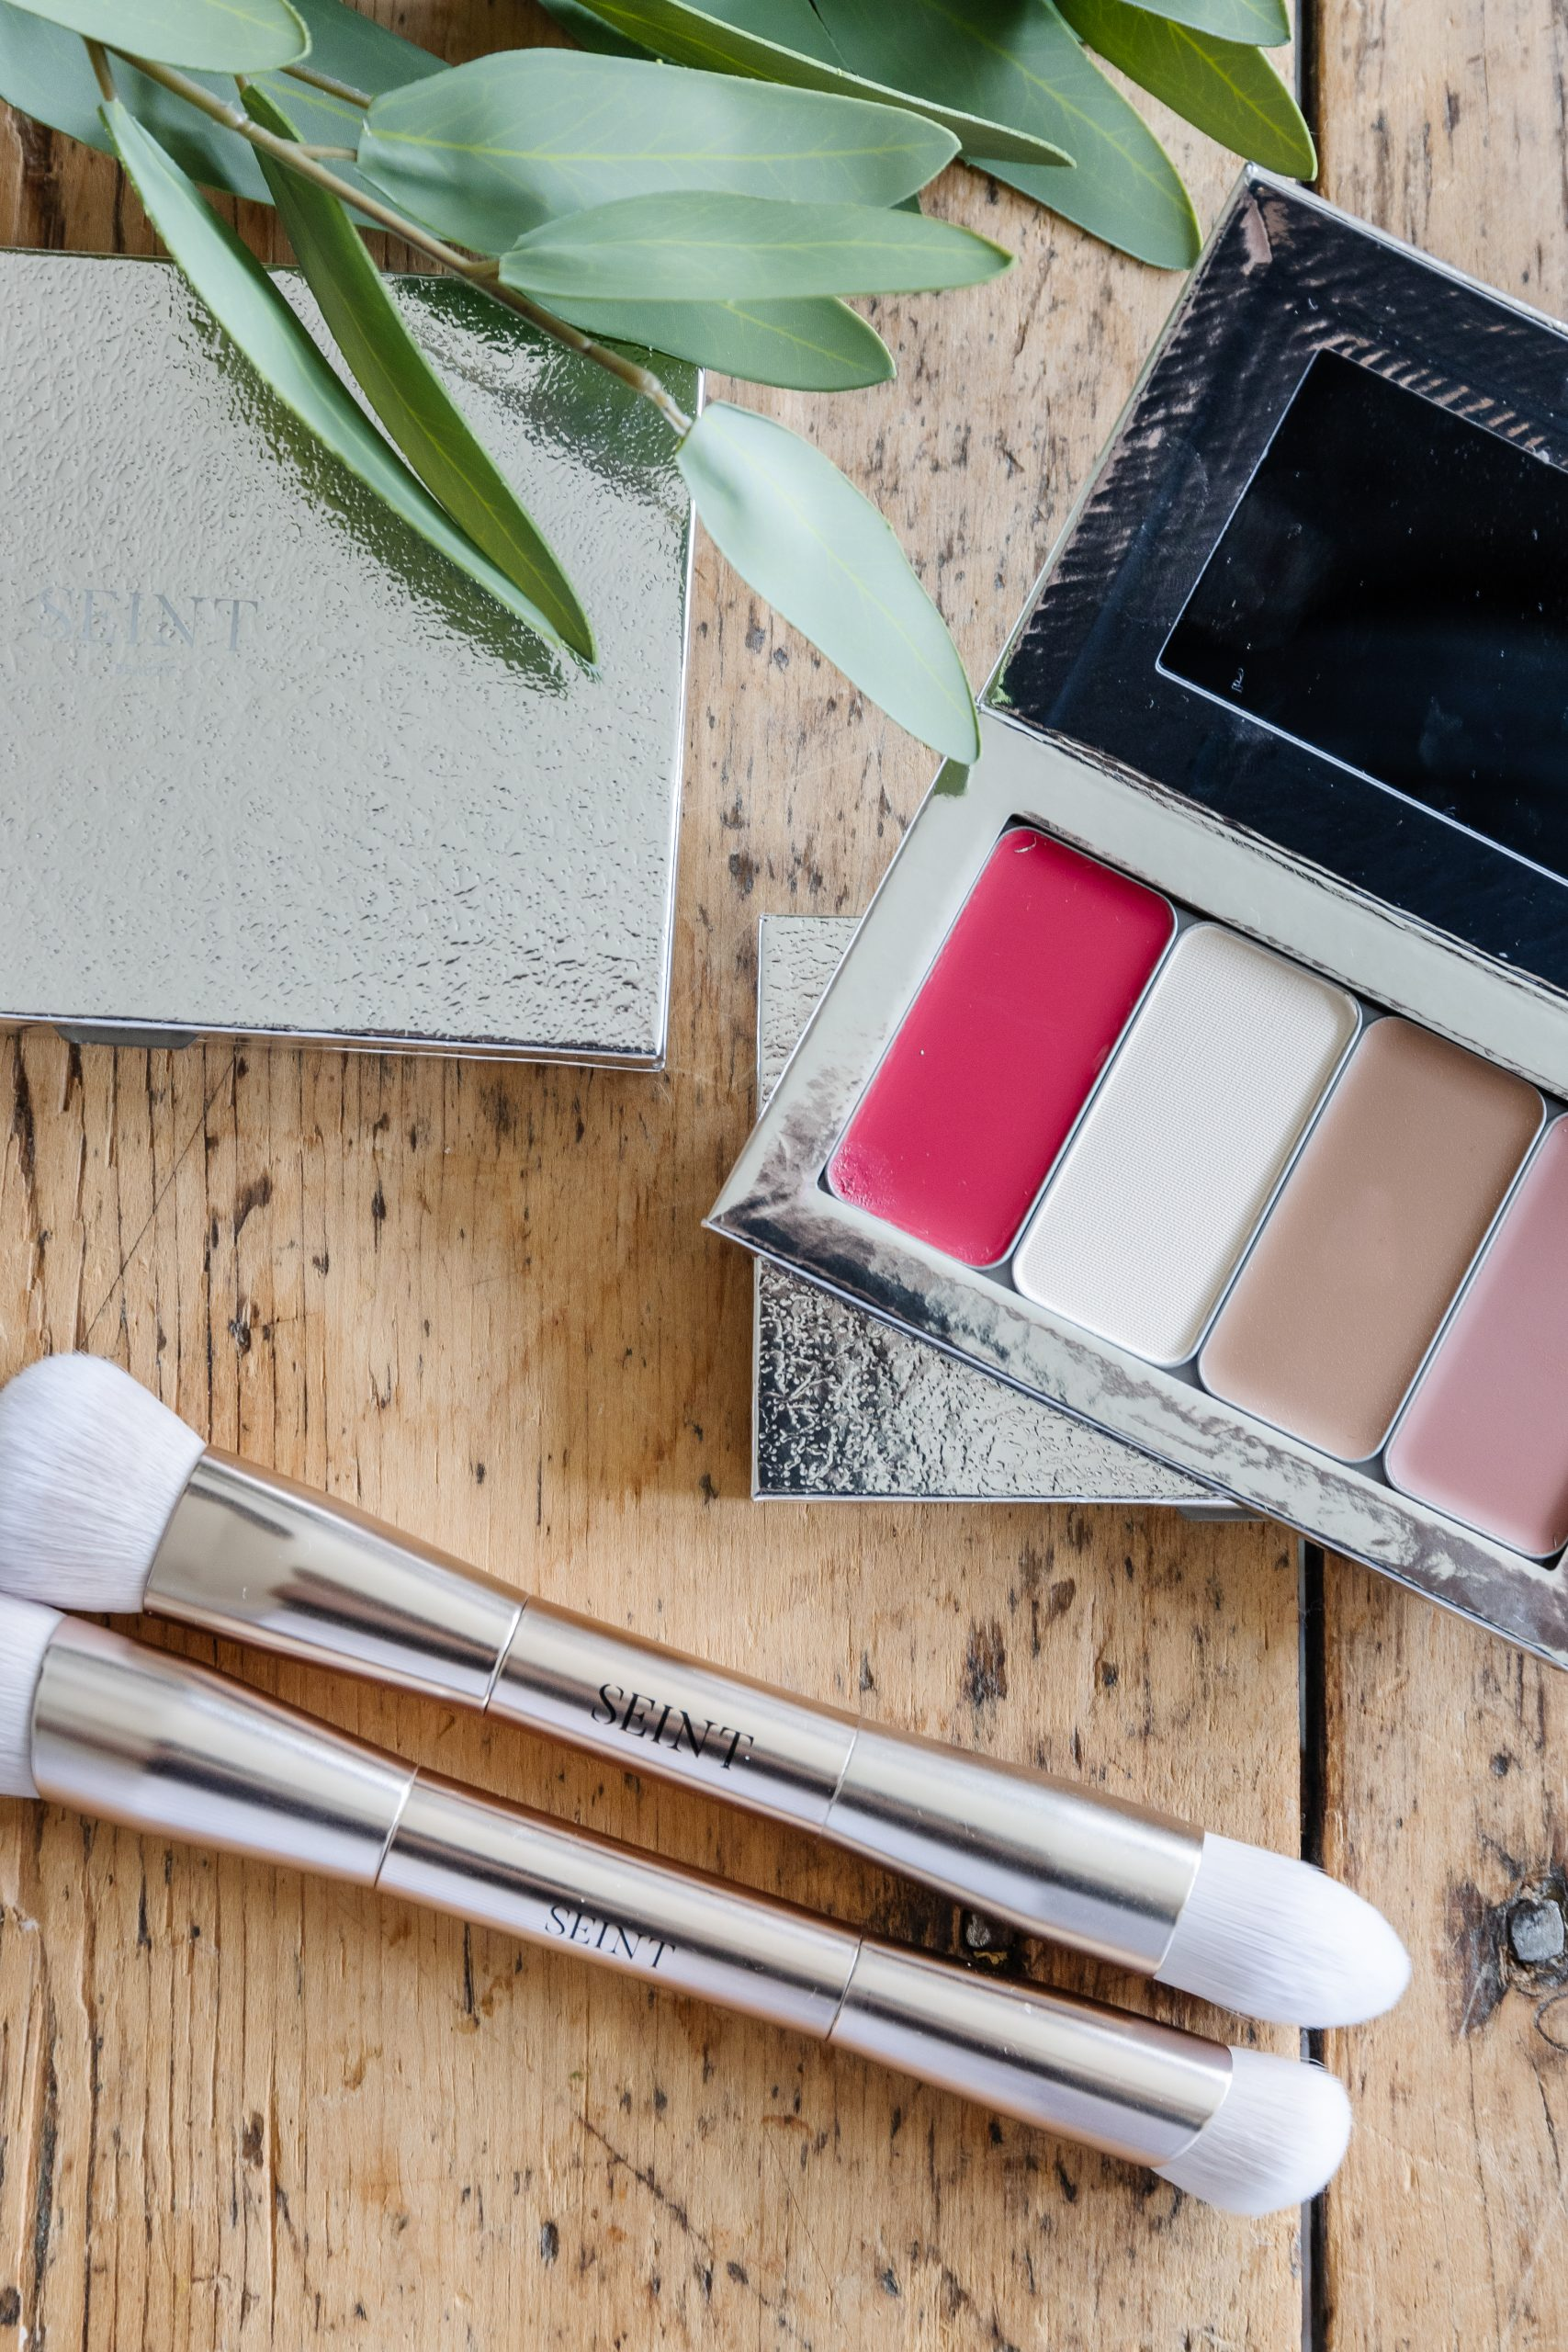 Seint Makeup by Jessica Sara Morris. Toxic Free Makeup that is formulated for all skin tones and textures. Get Colour Matched Today!